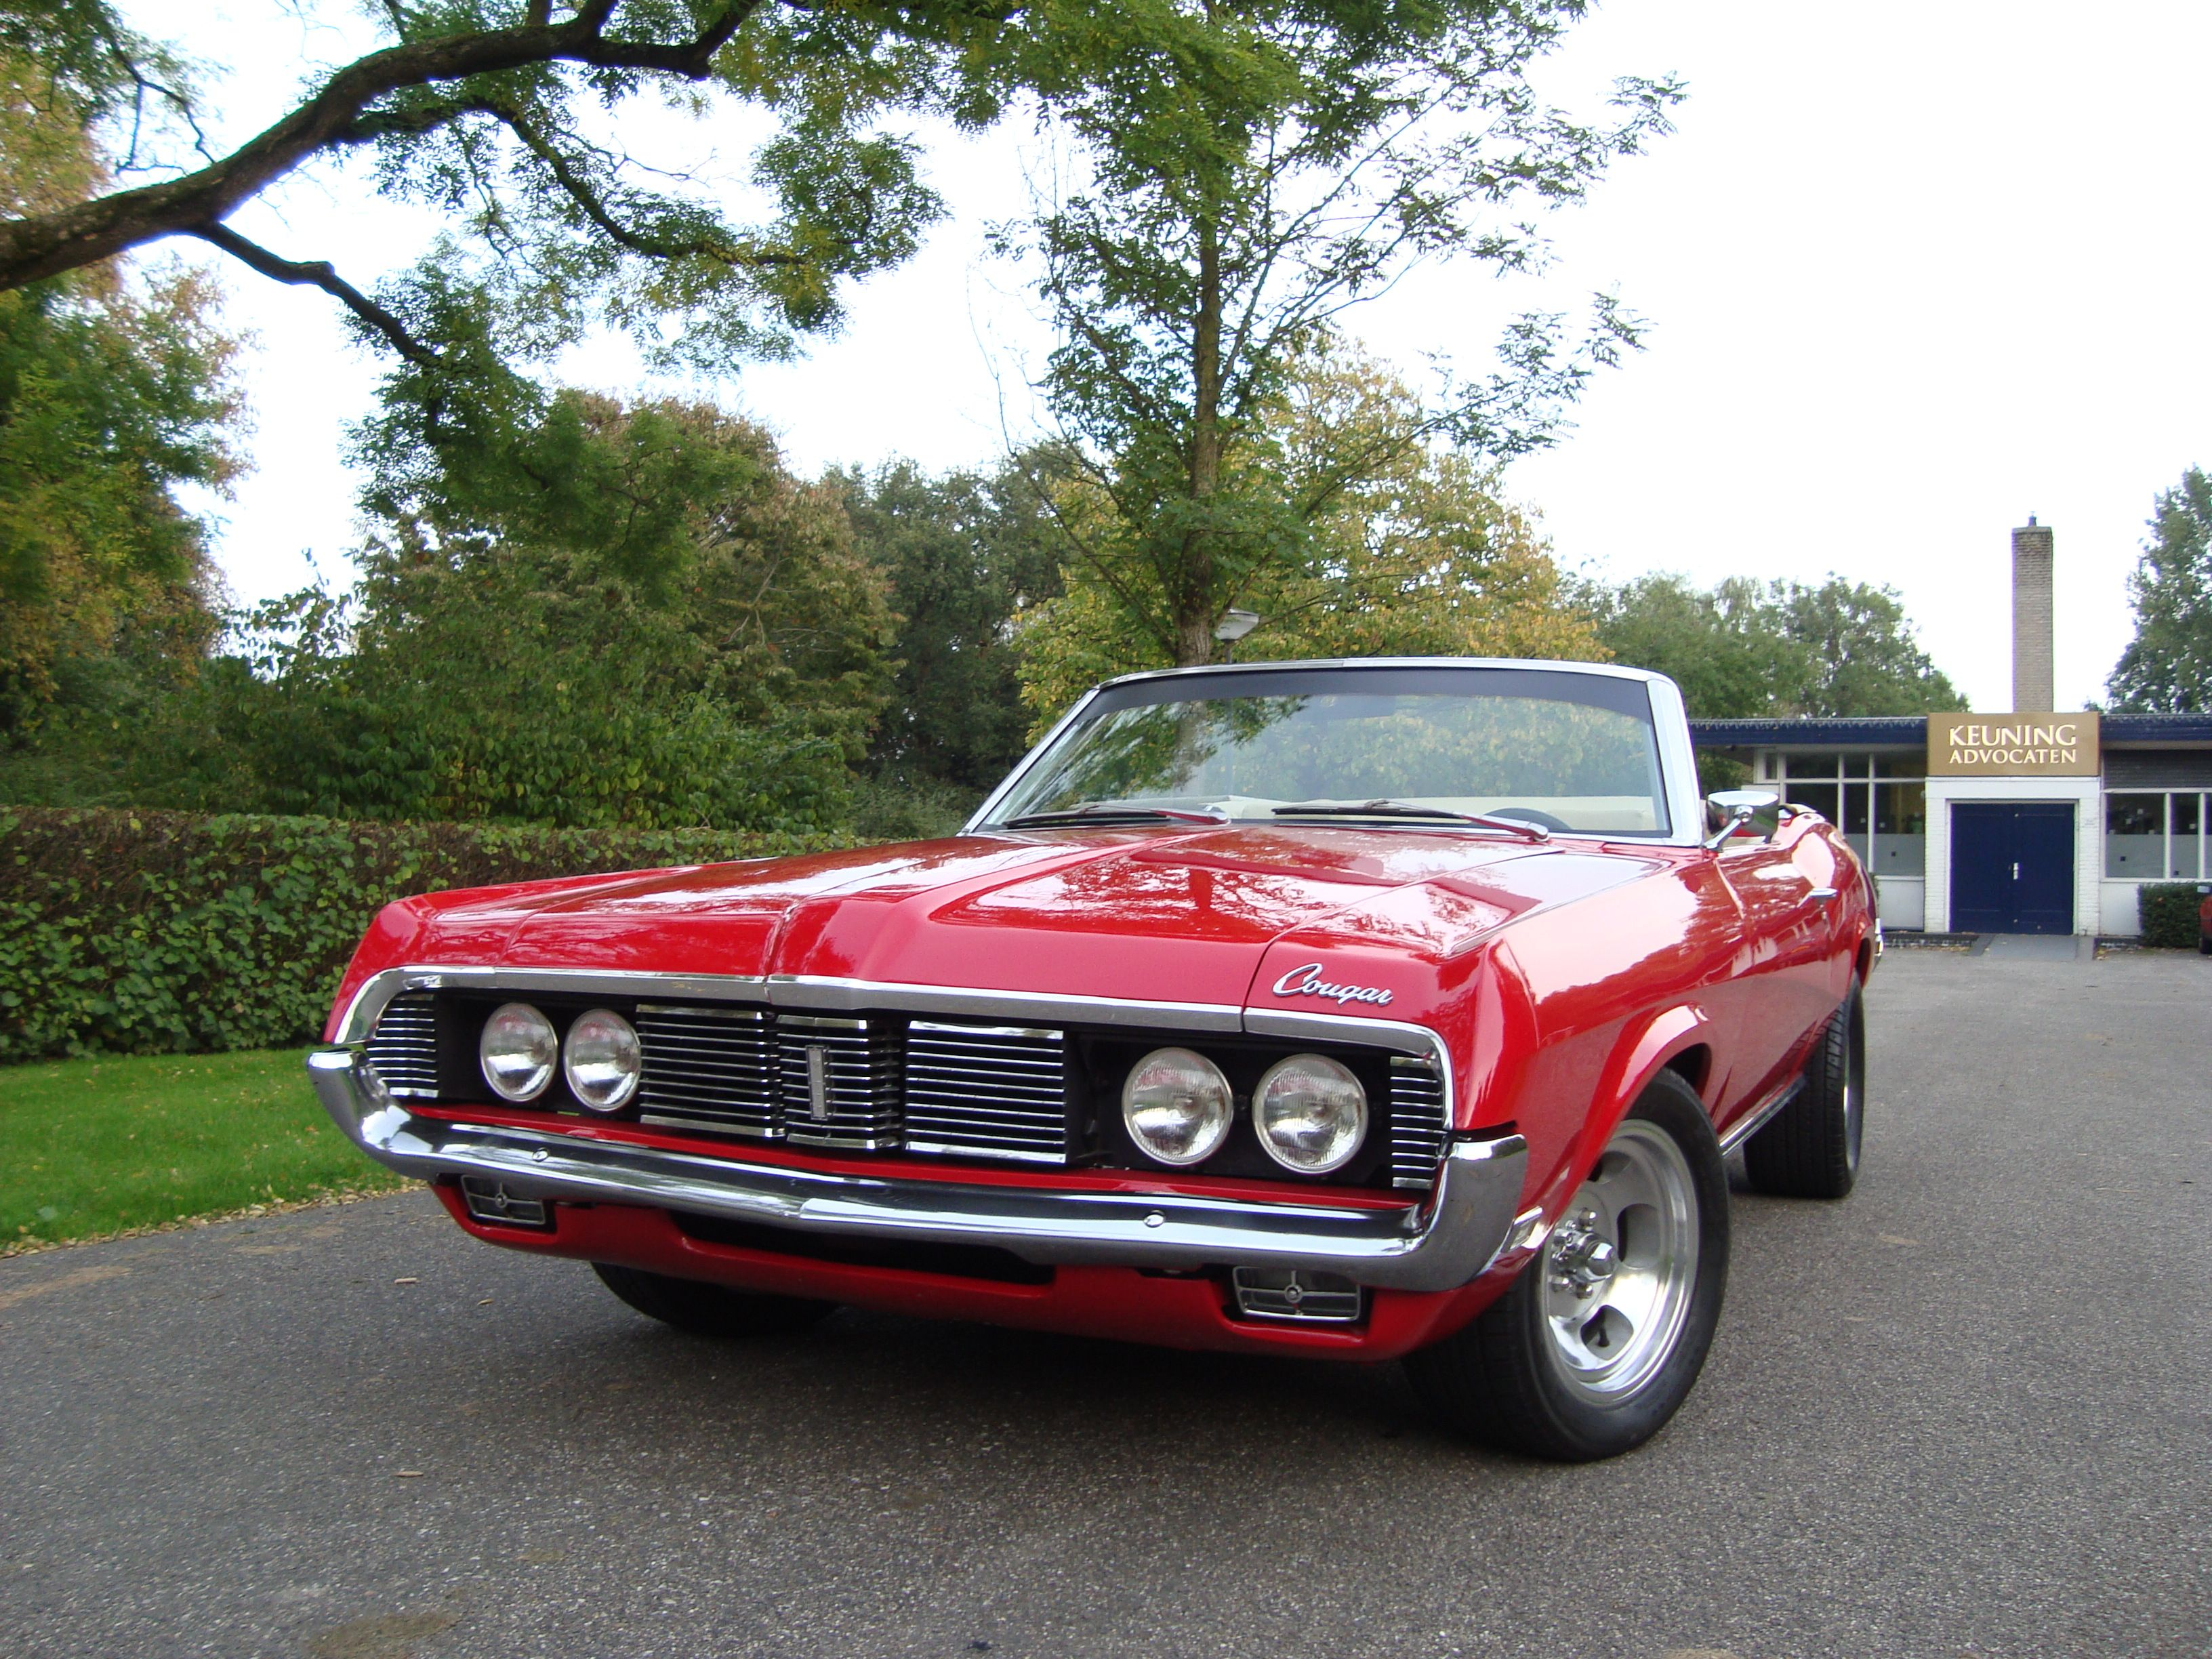 Eyes open killer cat mercury cougar convertible 1969 lightweight 67 68 69 70 ford mustang cabrio musclecar 351 4v